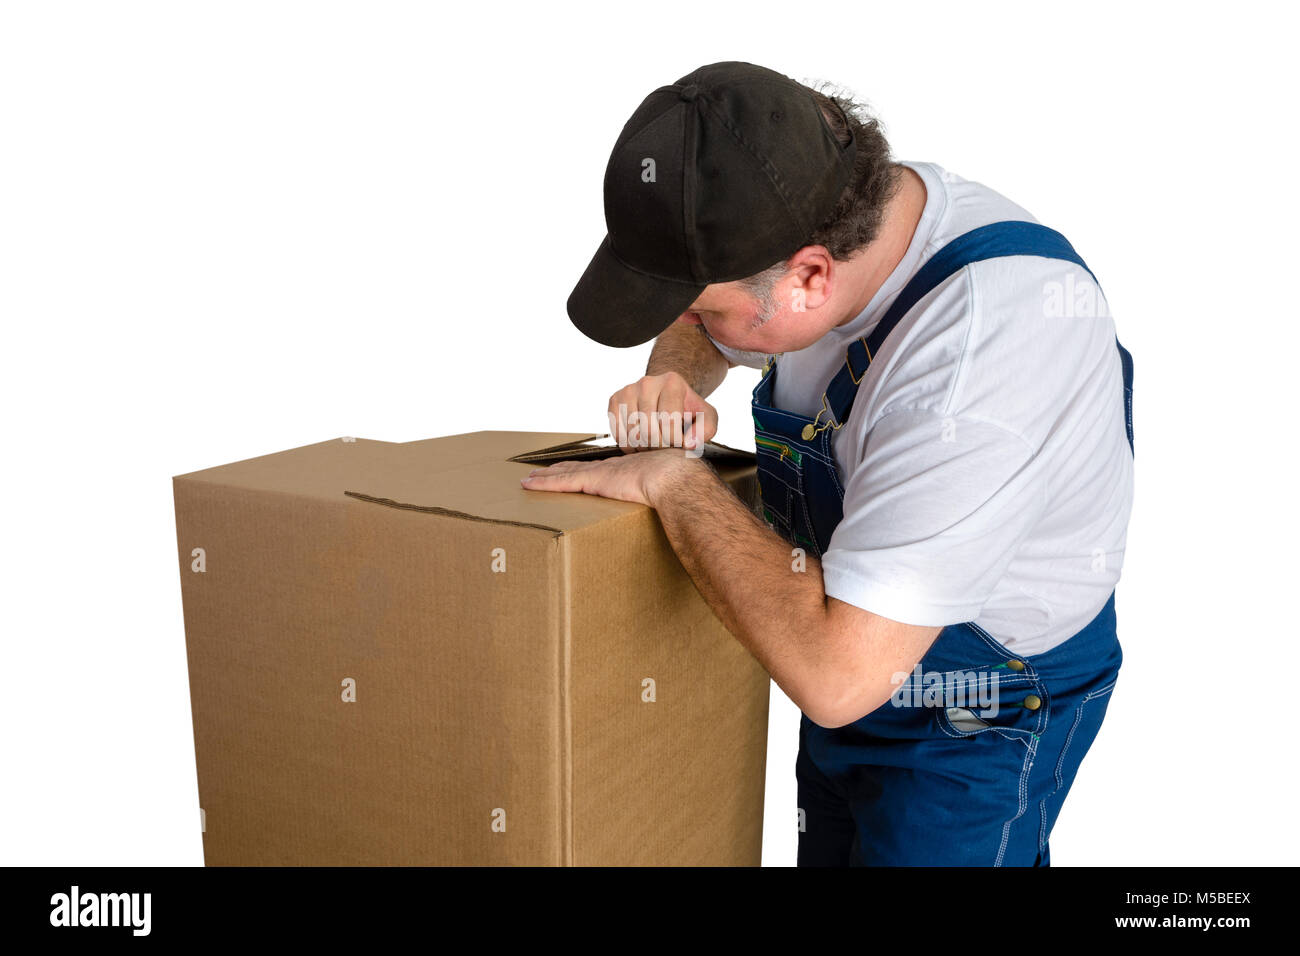 Male worker wearing dungarees opening cardboard box against white background - Stock Image